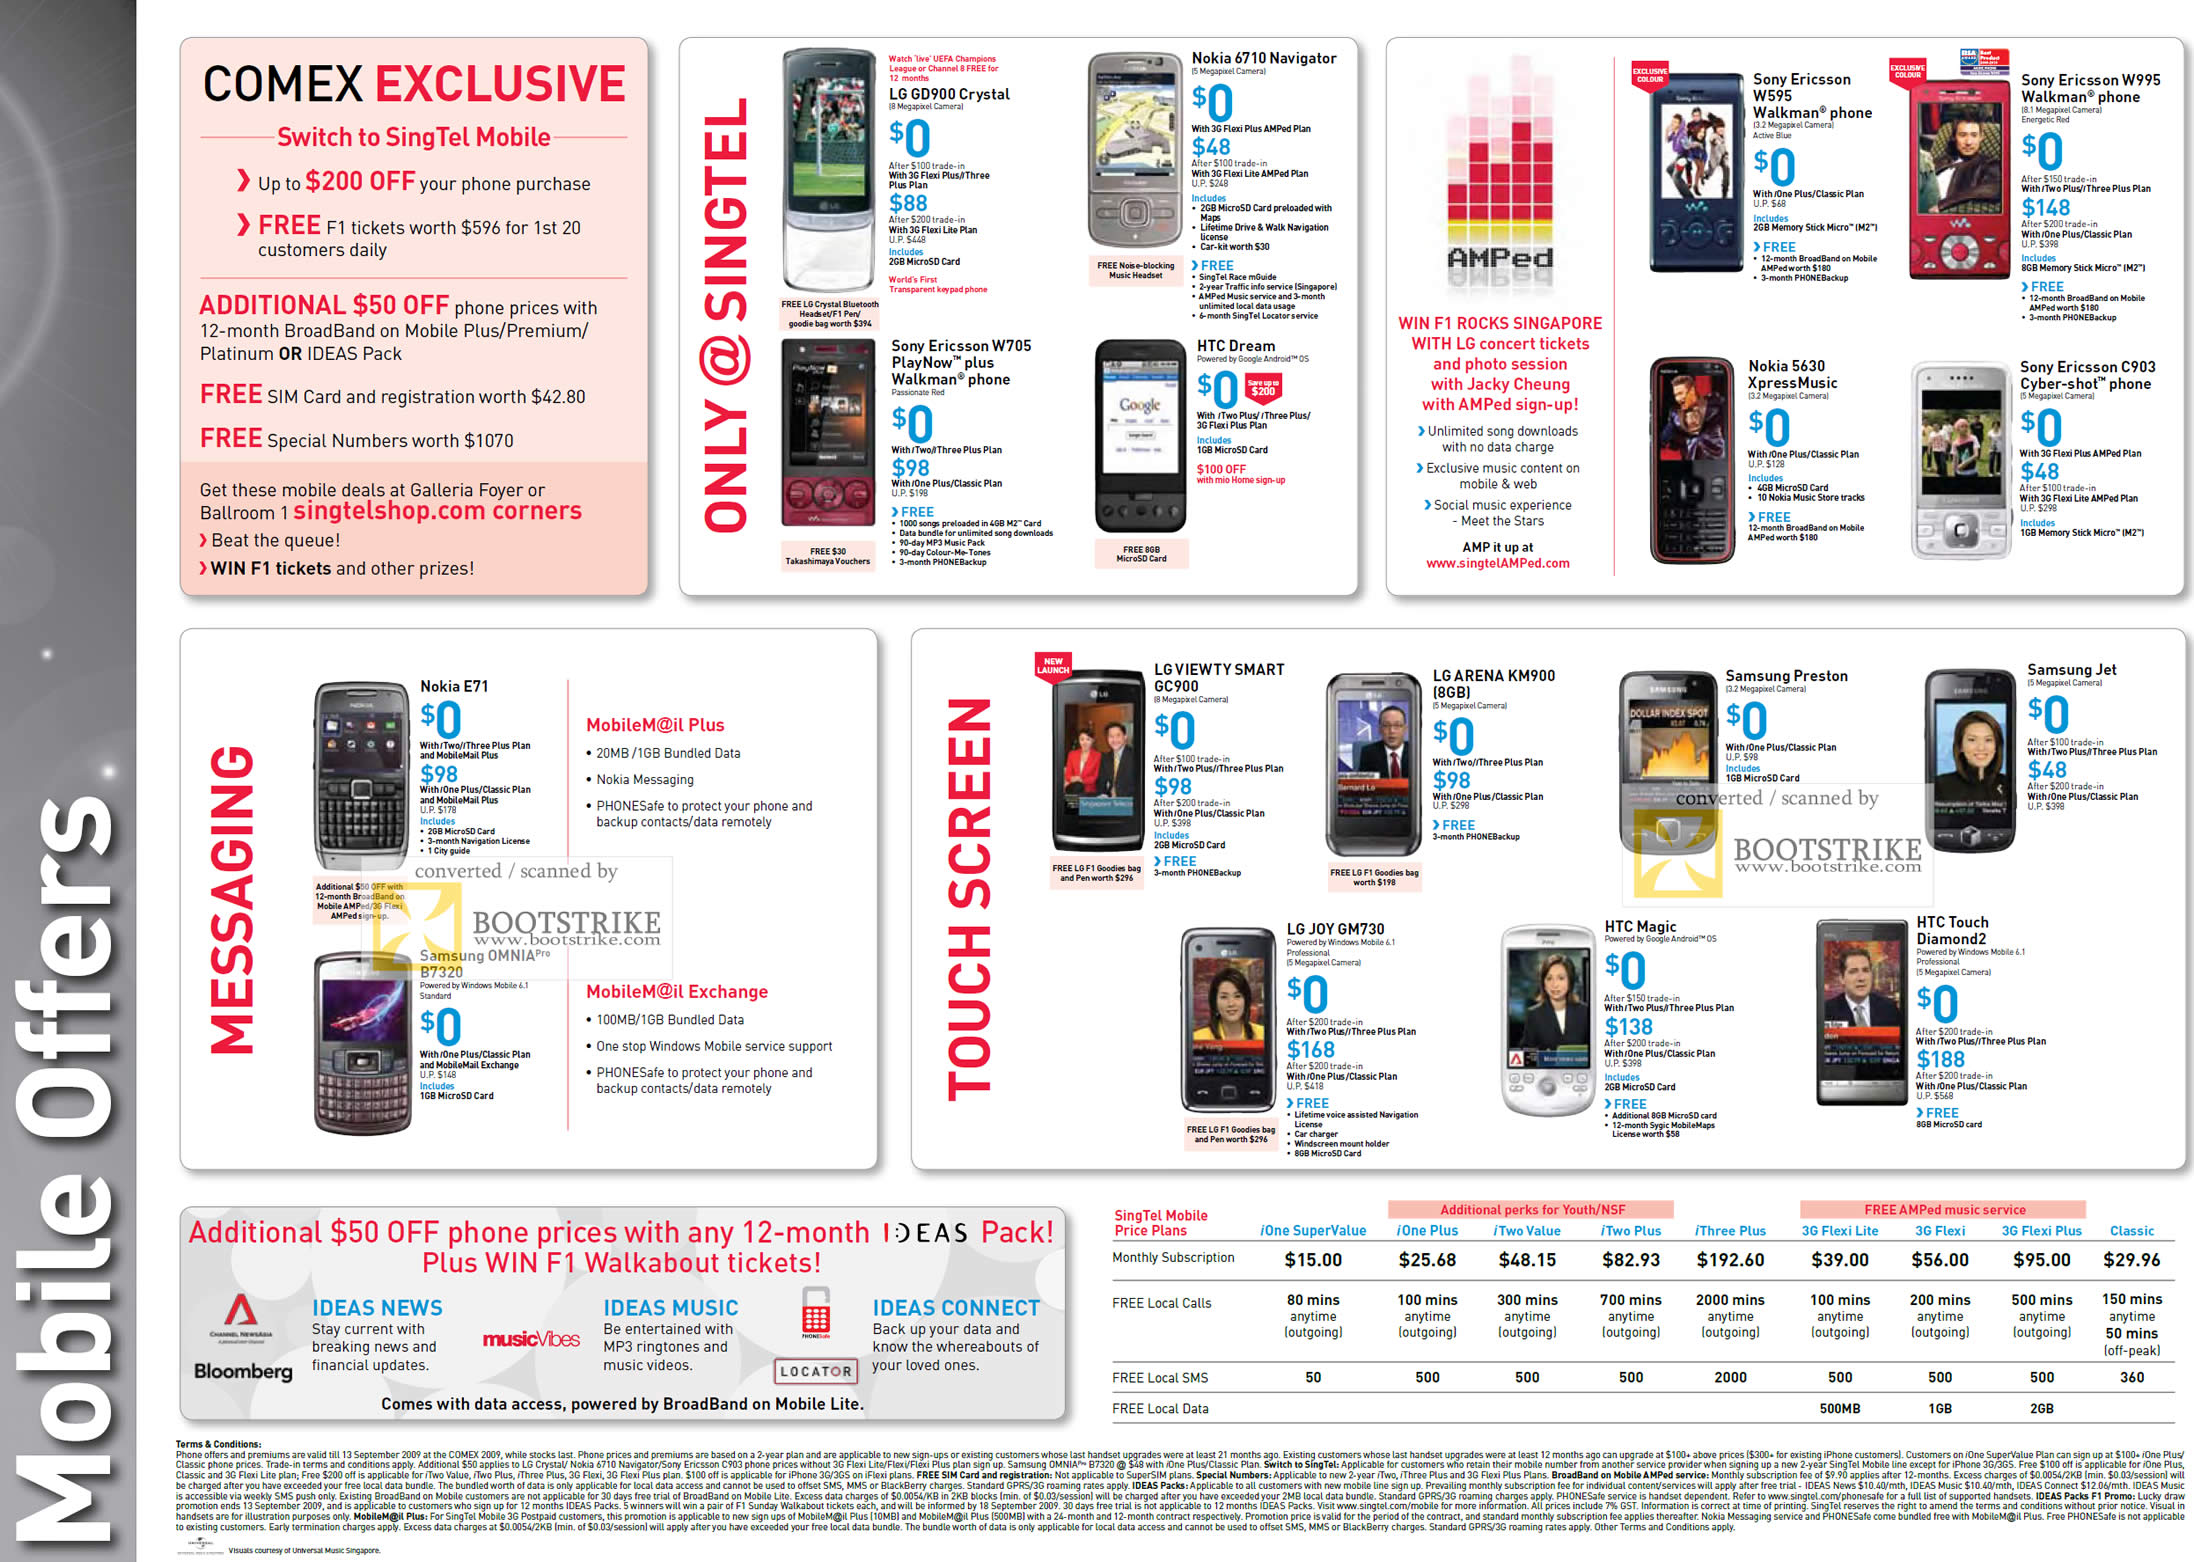 Comex 2009 price list image brochure of Singtel Mobile Phone Offers Nokia HTC Sony Ericsson LG Samsung GD900 Crystal Viewty Arena